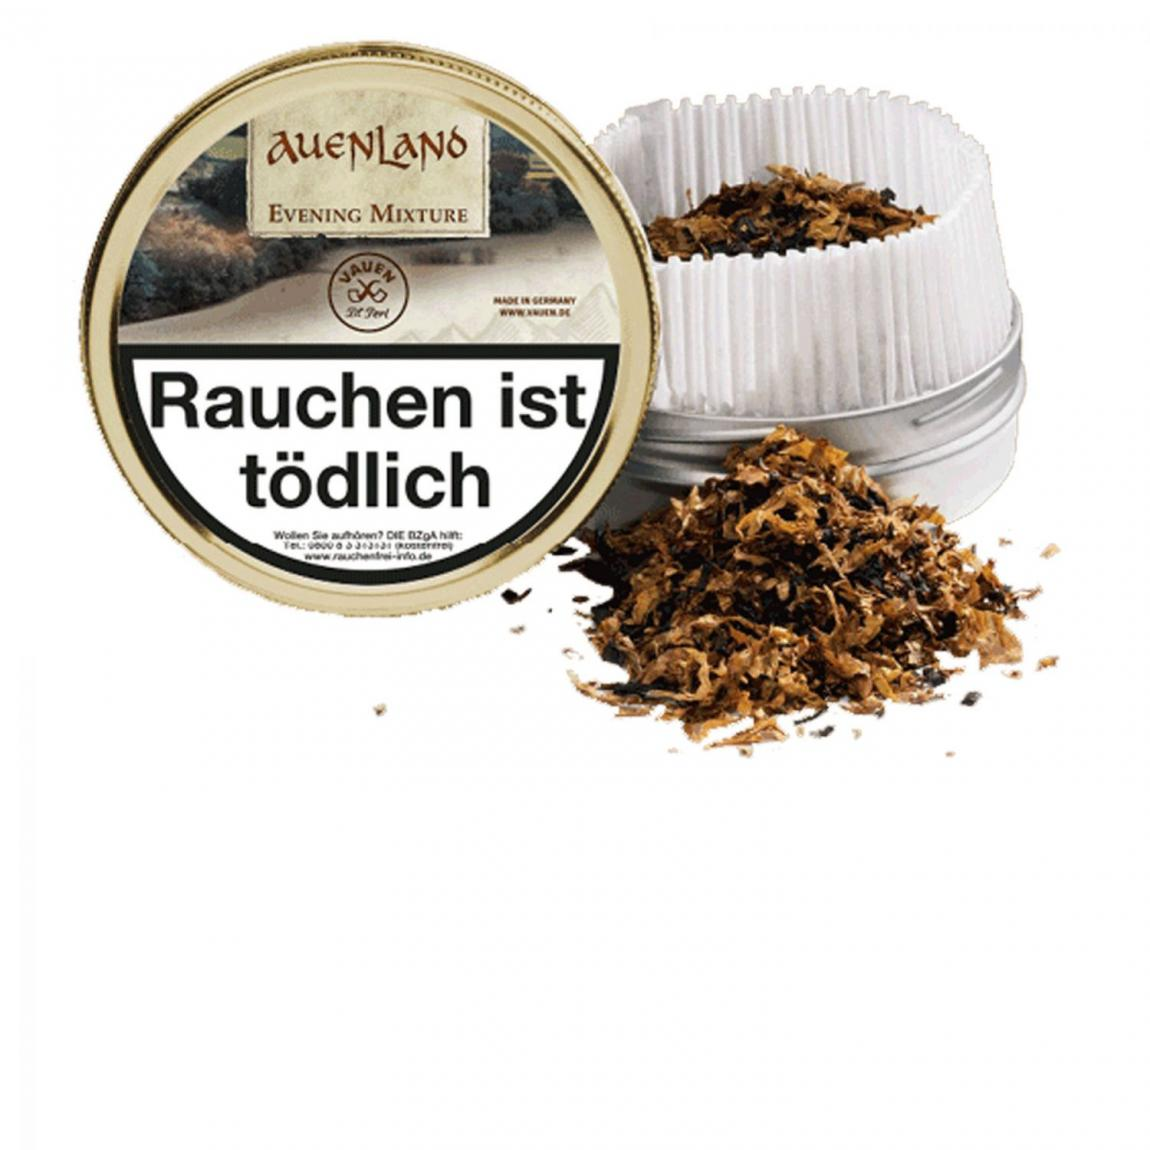 Vauen »Auenland« Evening Mixture 50g Dose